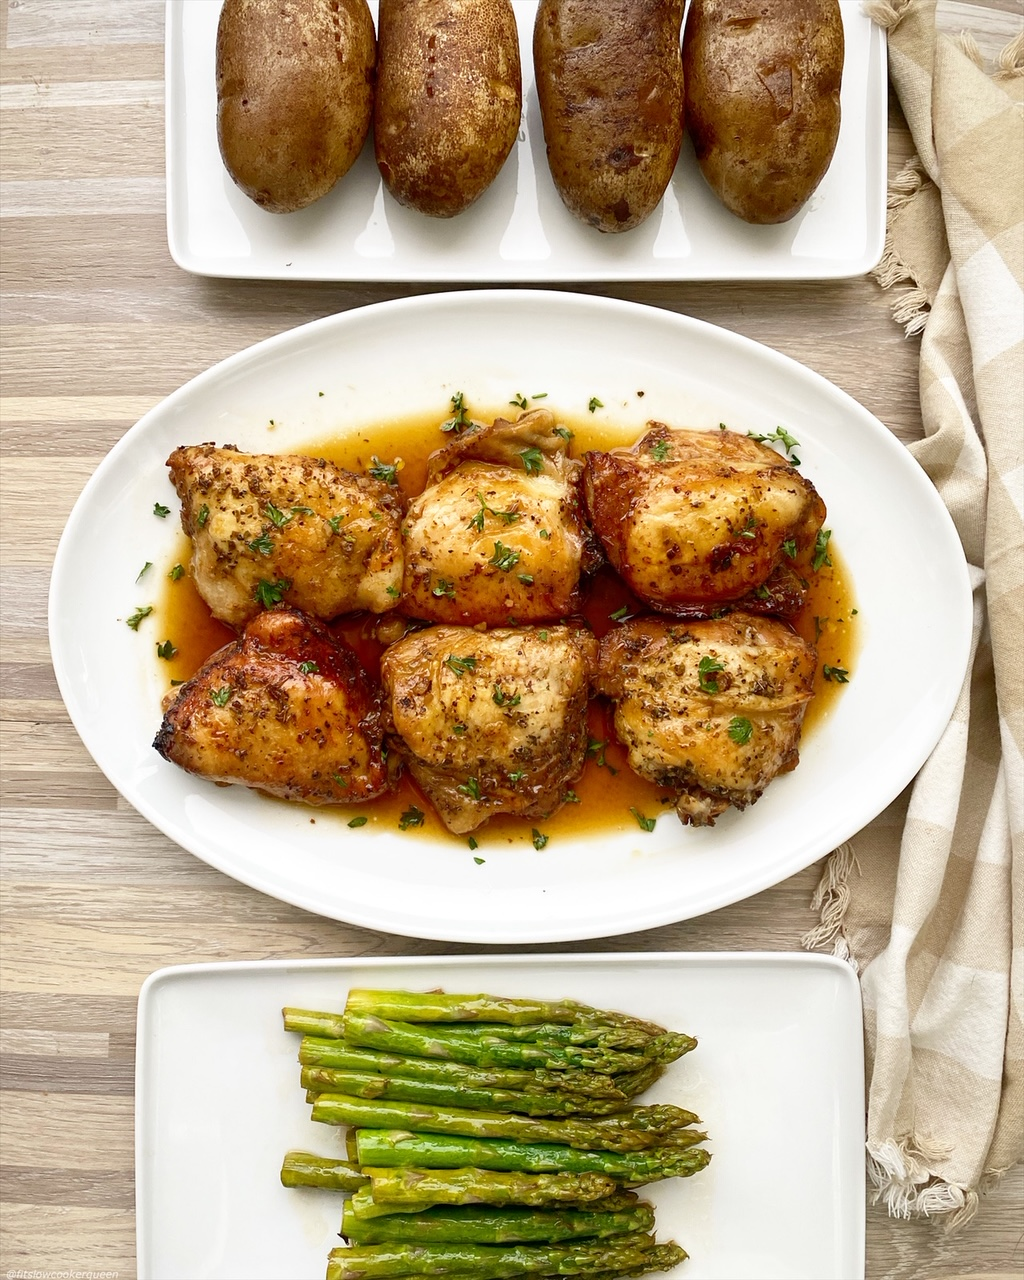 baked potatoes, asparagus, and chicken on white plate